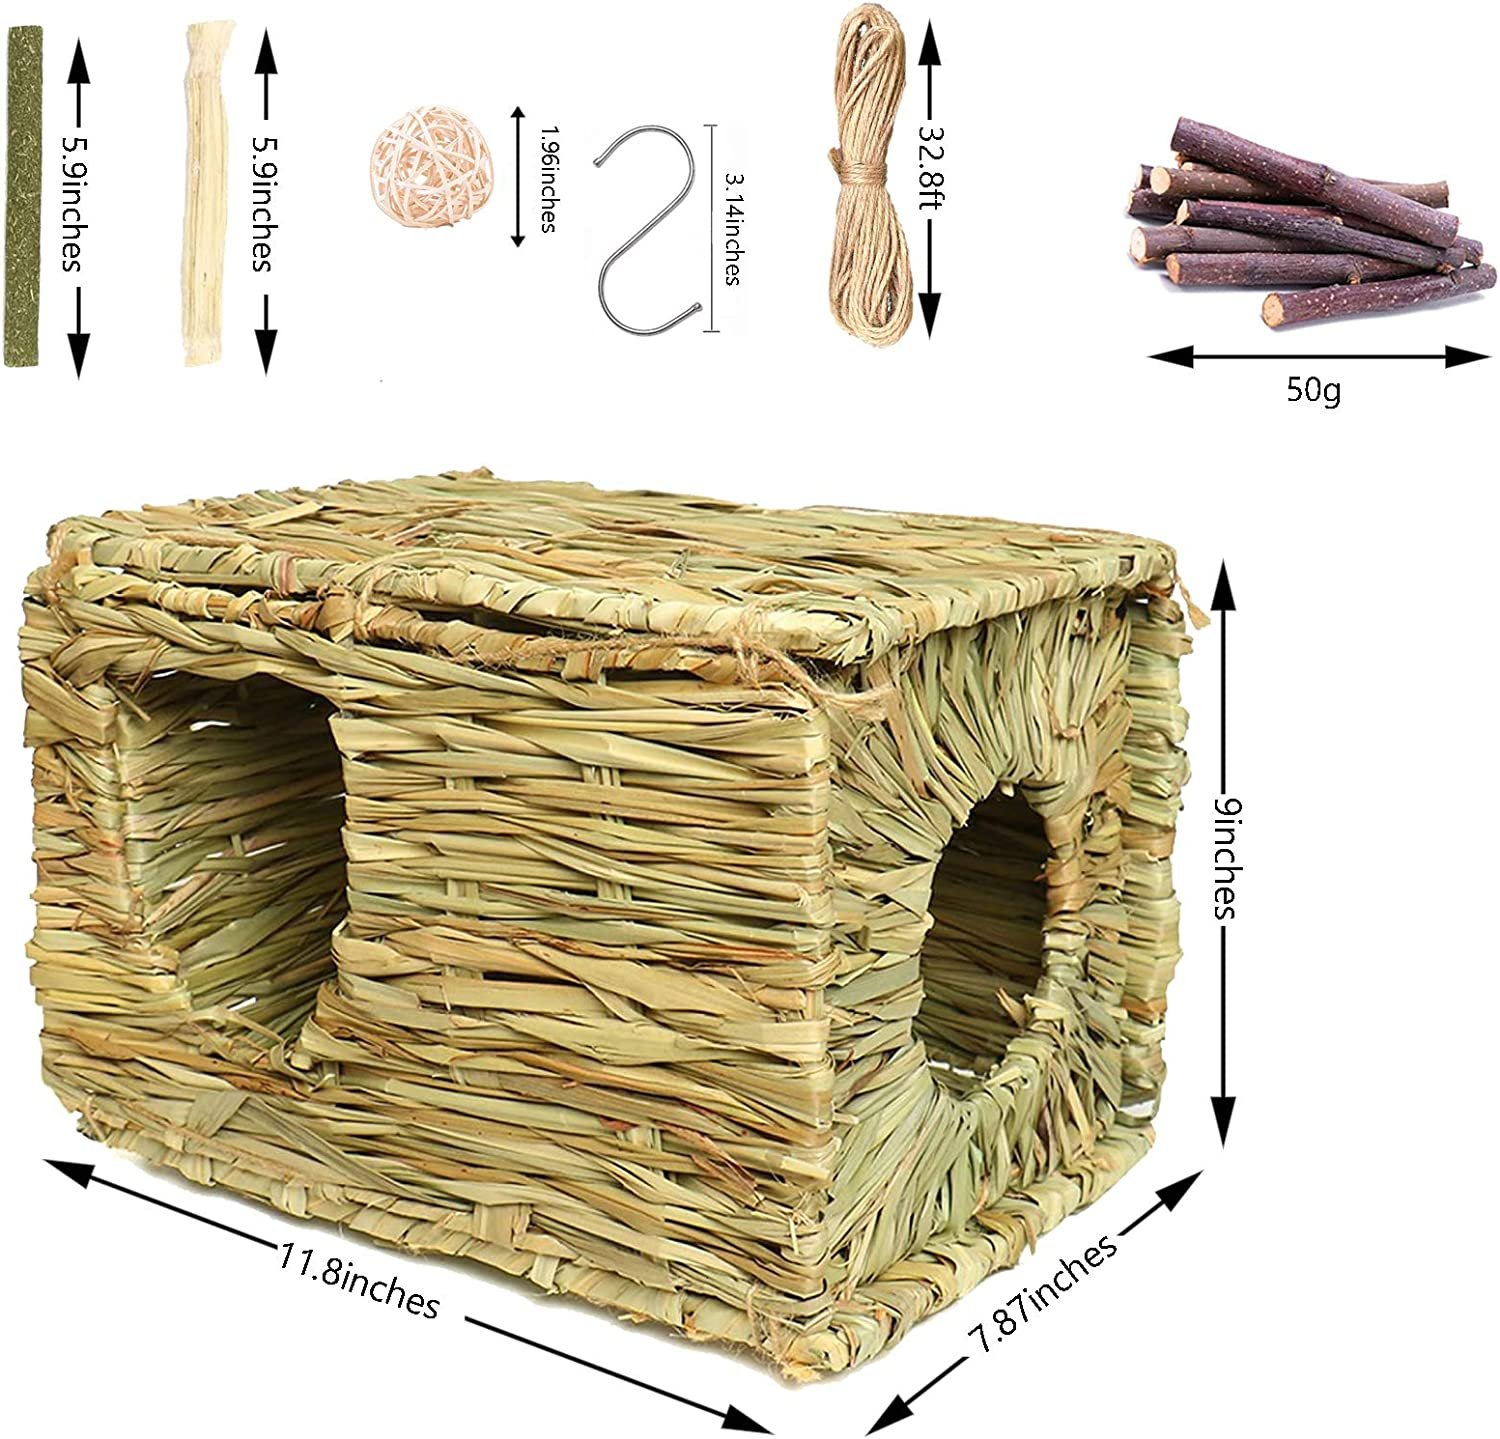 Guinea Pigs Chinchillas Gerbils Squirrels Edible Grass Hideaway VCZONE Bunny Grass House with 2 Grass Mat /& Play Balls Activity Toys for Rabbit Foldable Toy Hut with Openings